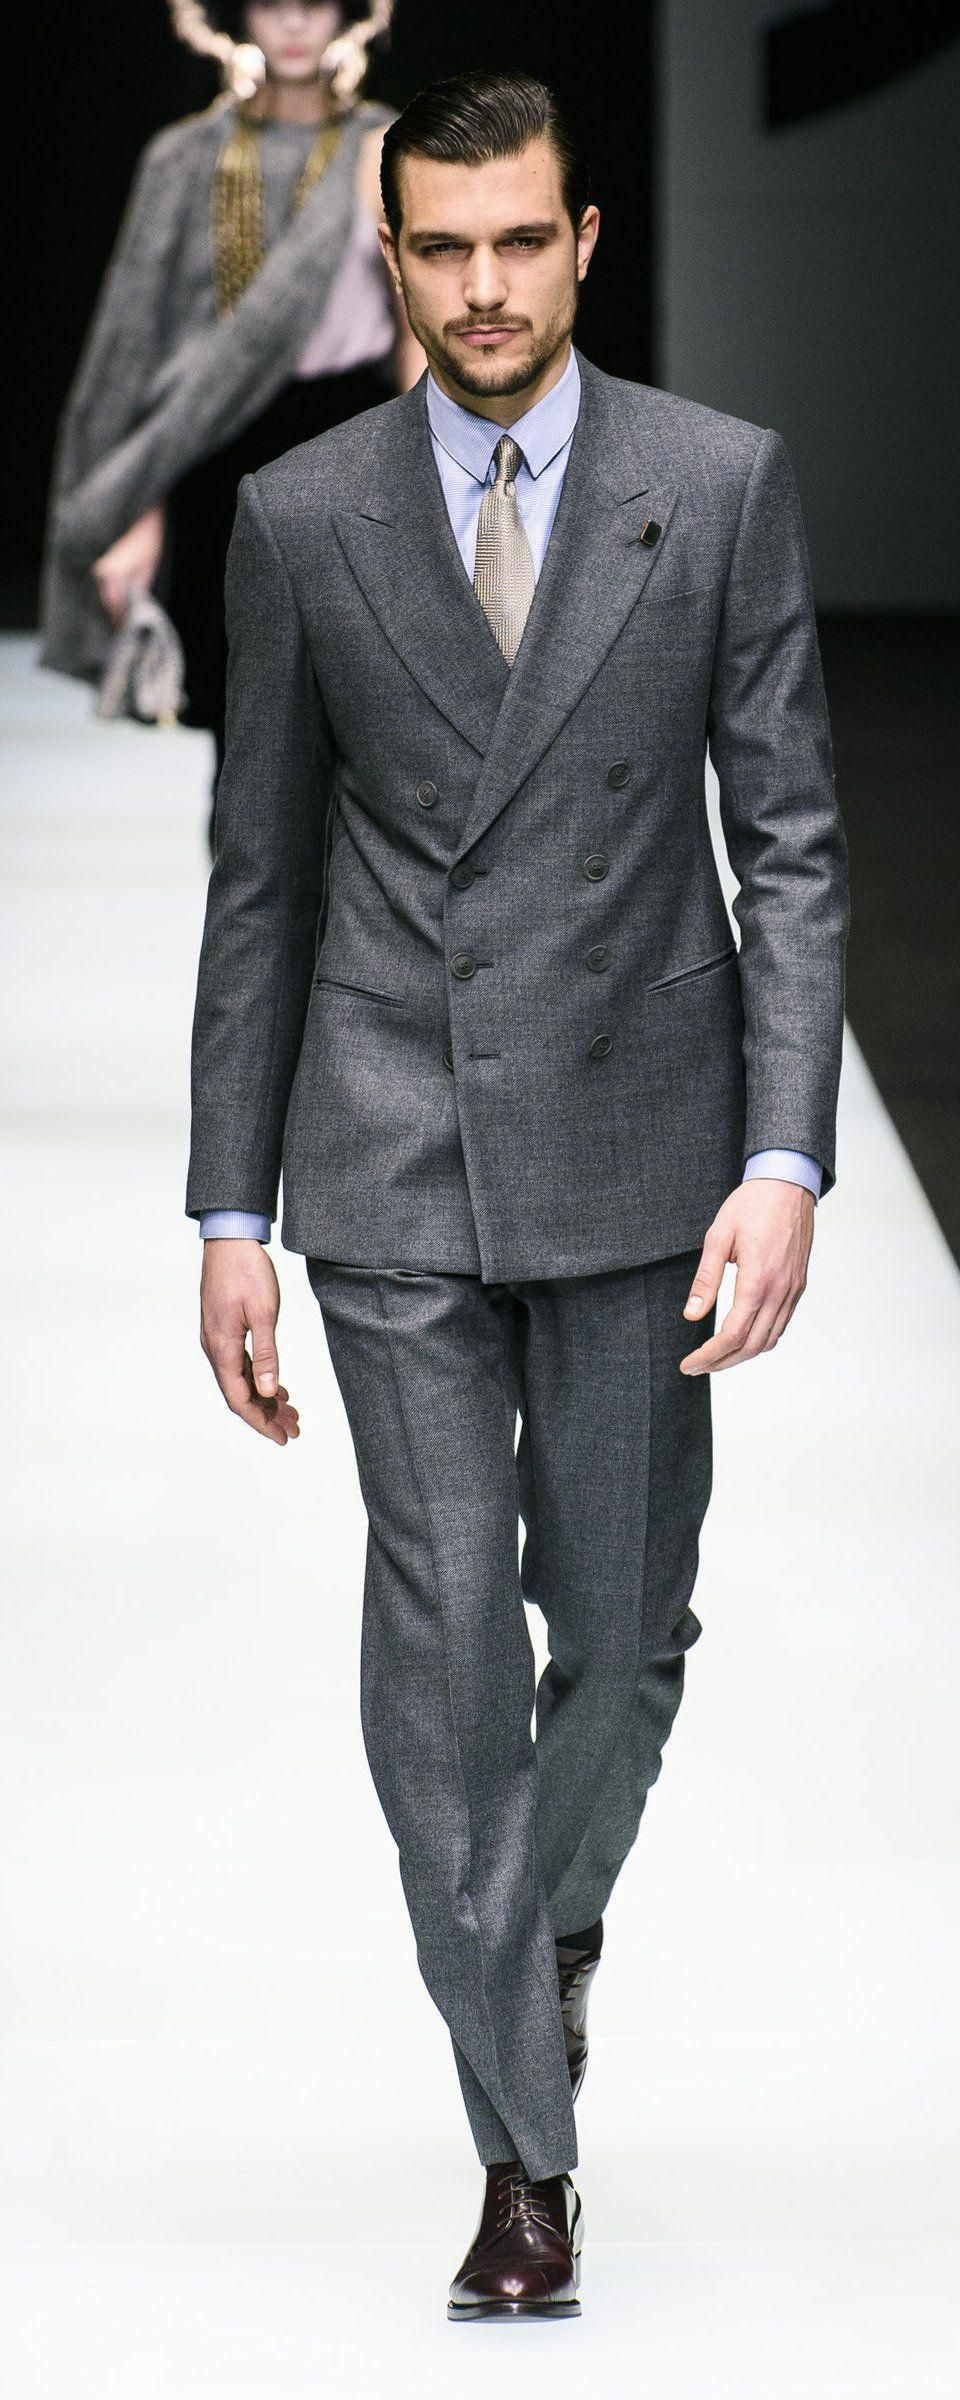 ModeHommeTendance Stylish mens suits, Mens winter